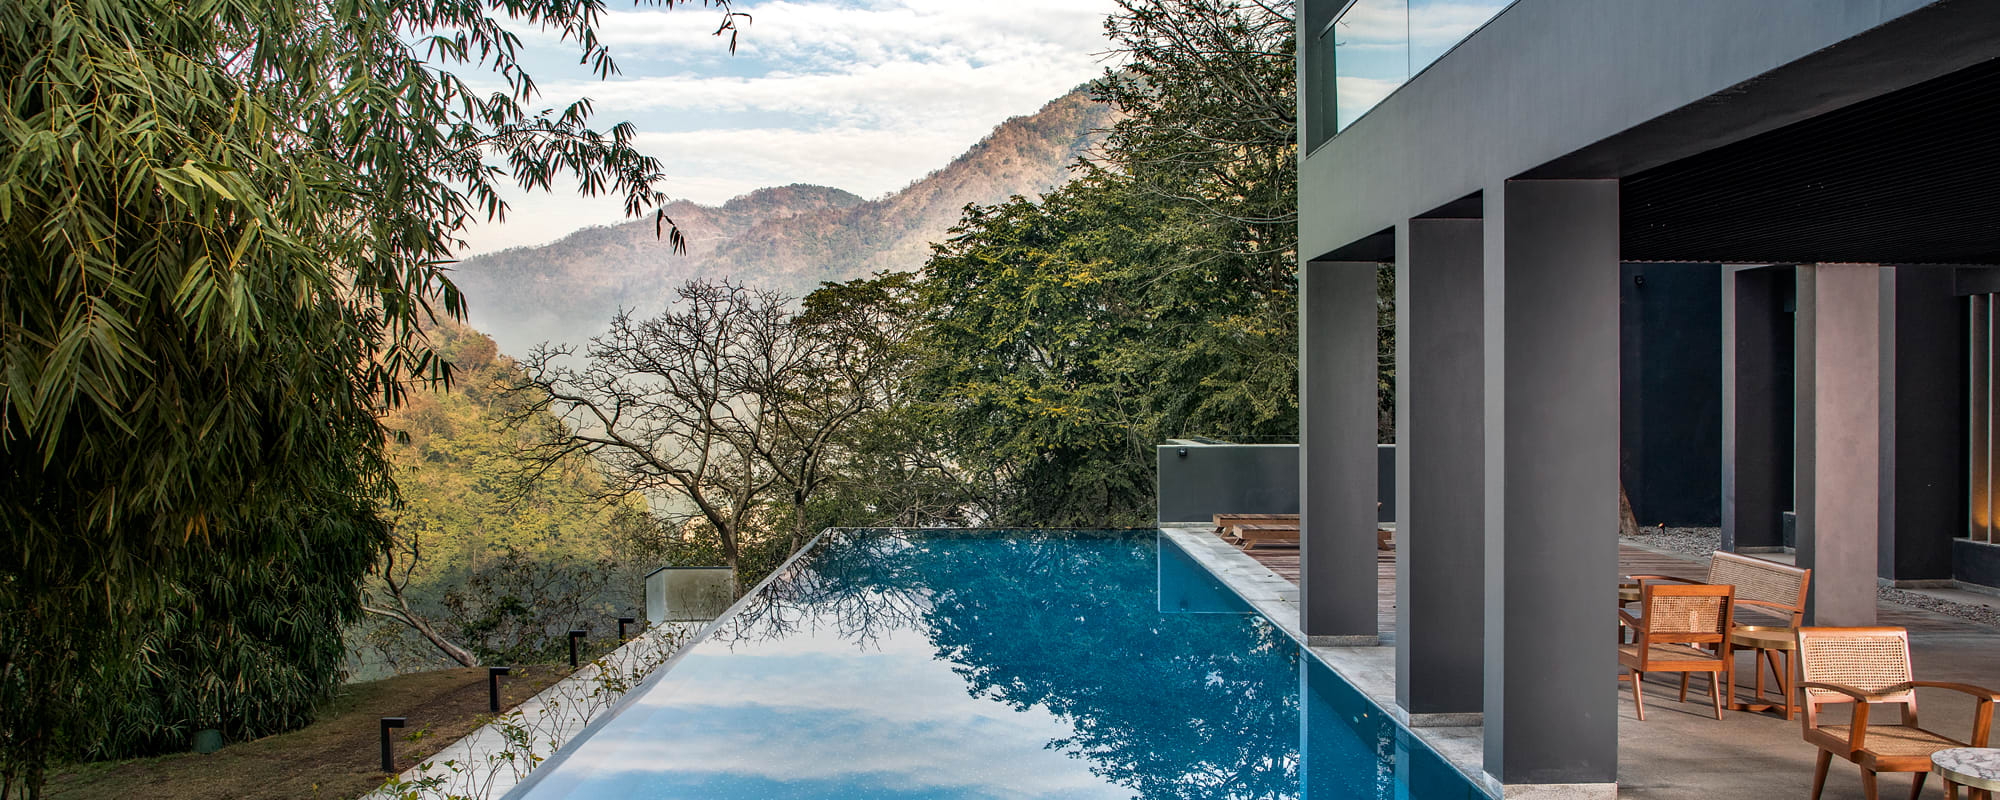 Pool, Rishikesh, Indien, Hotel, Travel, Reise